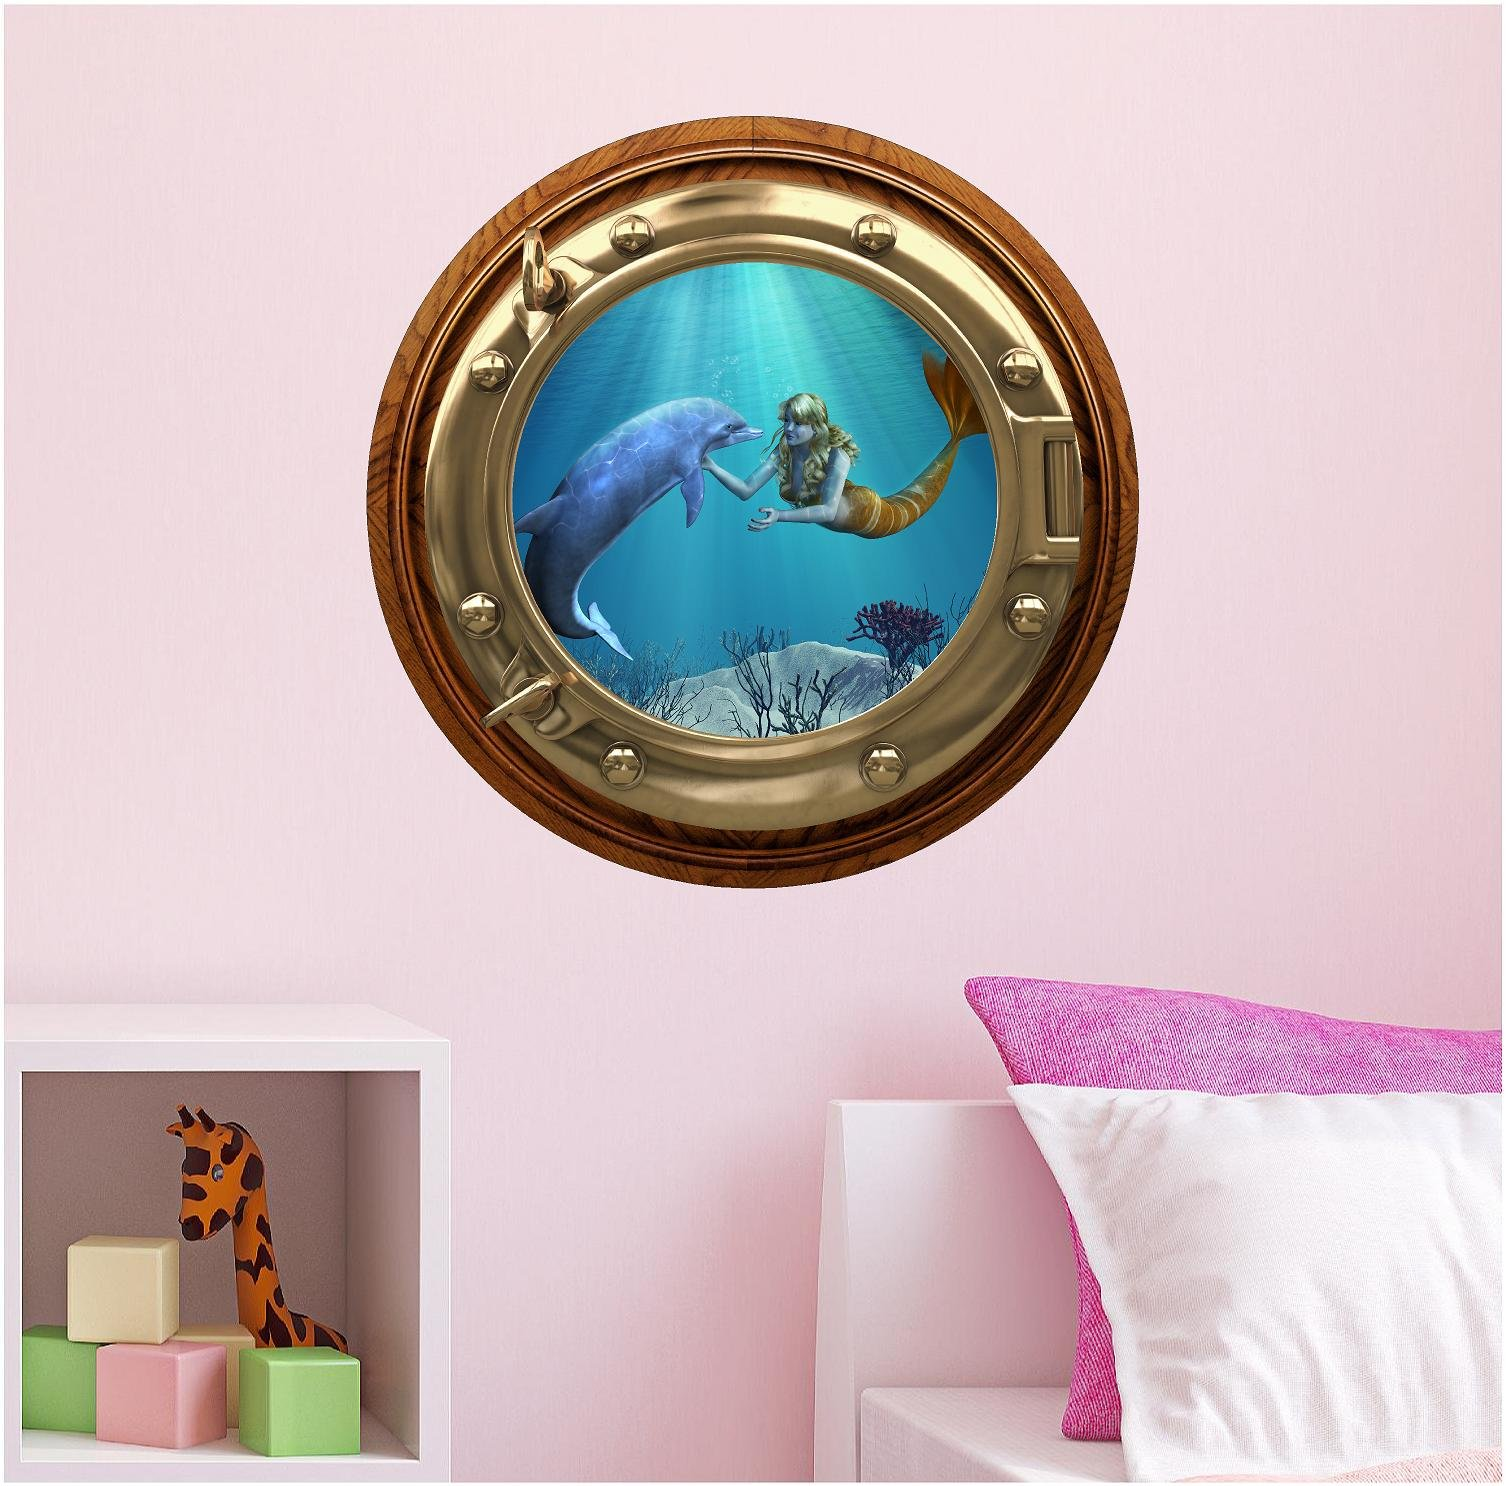 24'' PortScape WALL DECAL Mermaid w/ Dolphin #1 BRONZE Porthole 3D Under The Sea Ocean Window View Sticker Home Peel Stick Easy Mural Decor